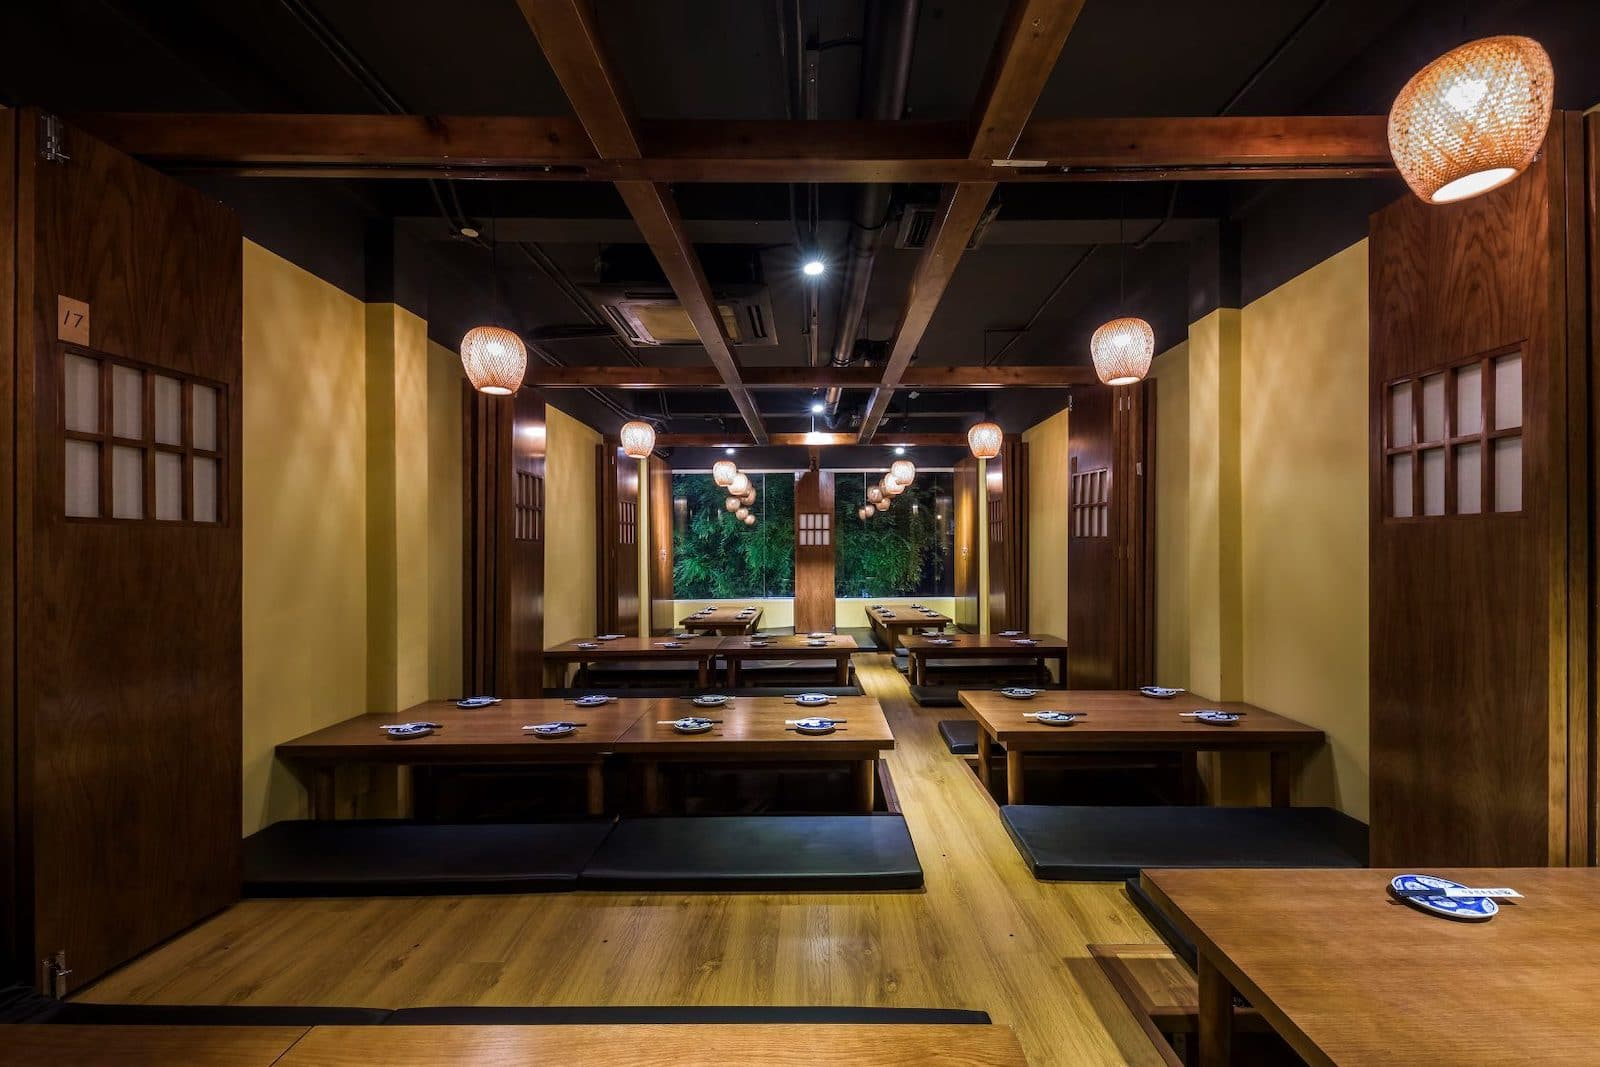 Image of the inside of Robata Dining An in HCMC, Vietnam